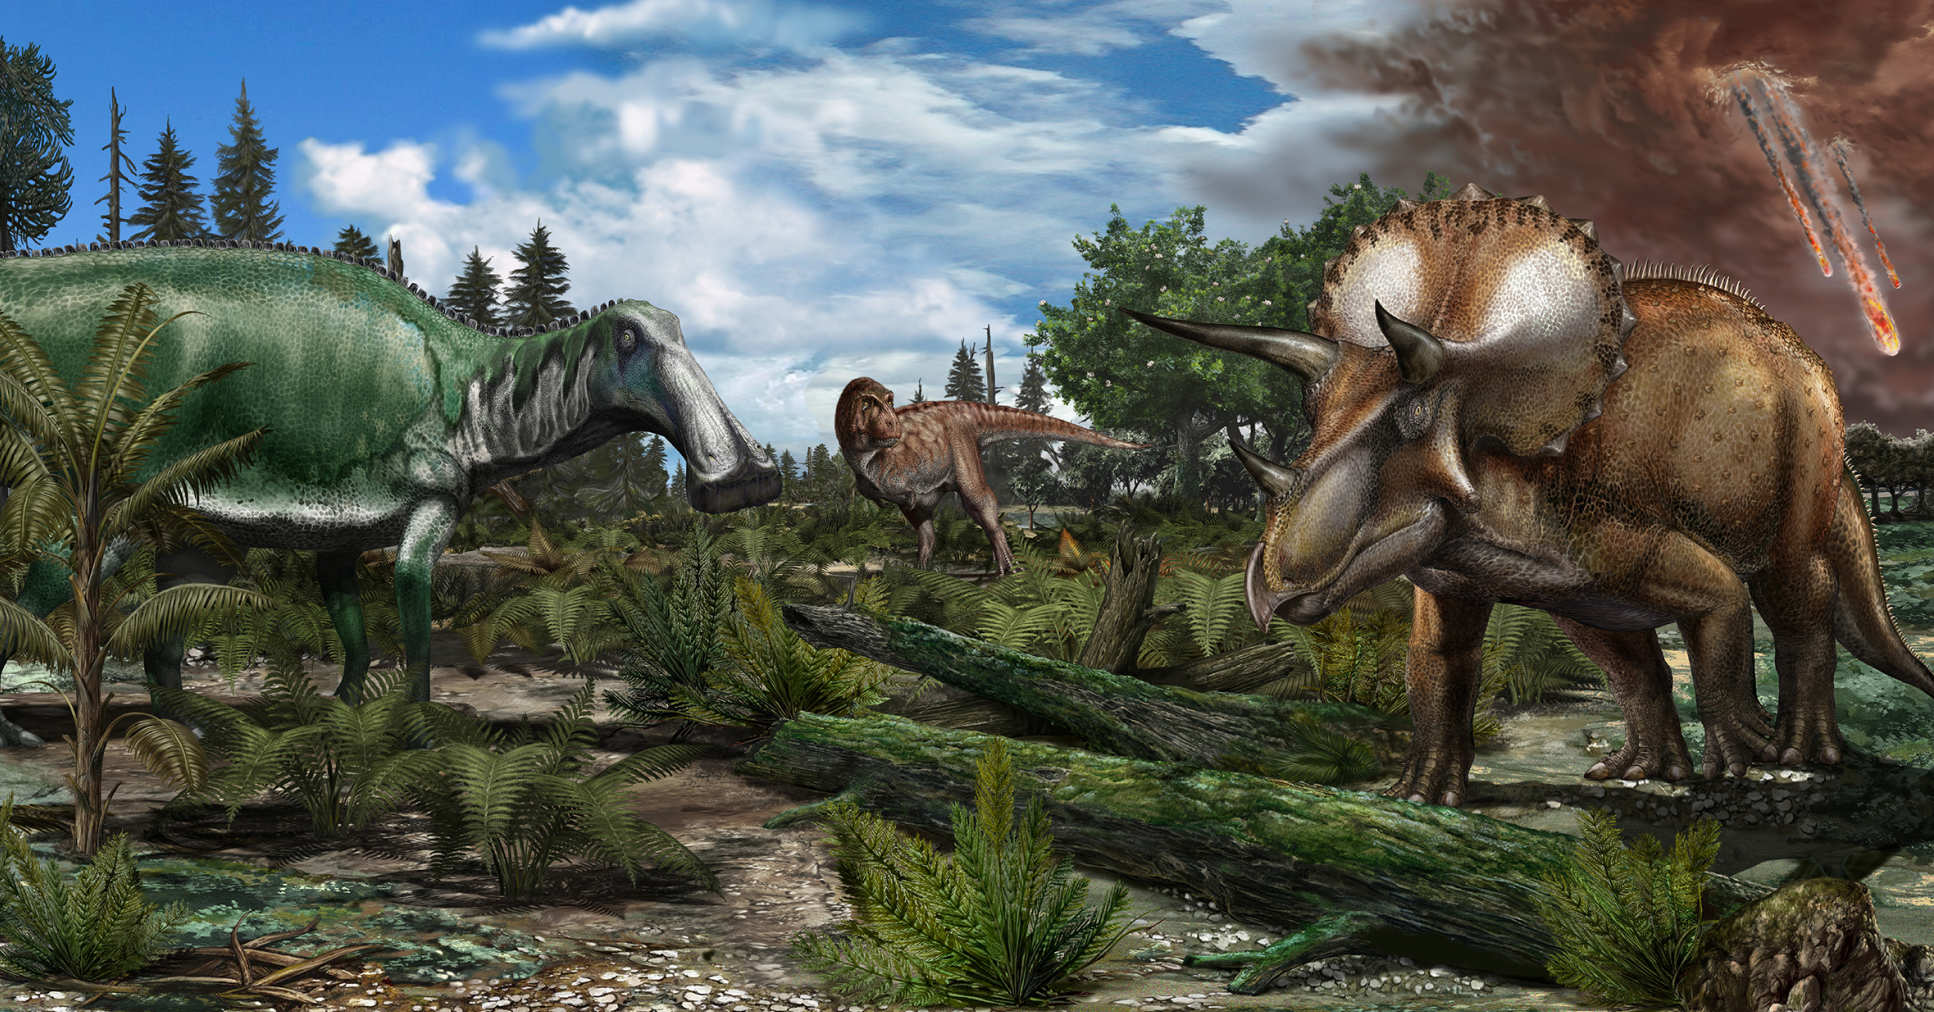 Illustration of dinosaurs and the asteroid in the sky